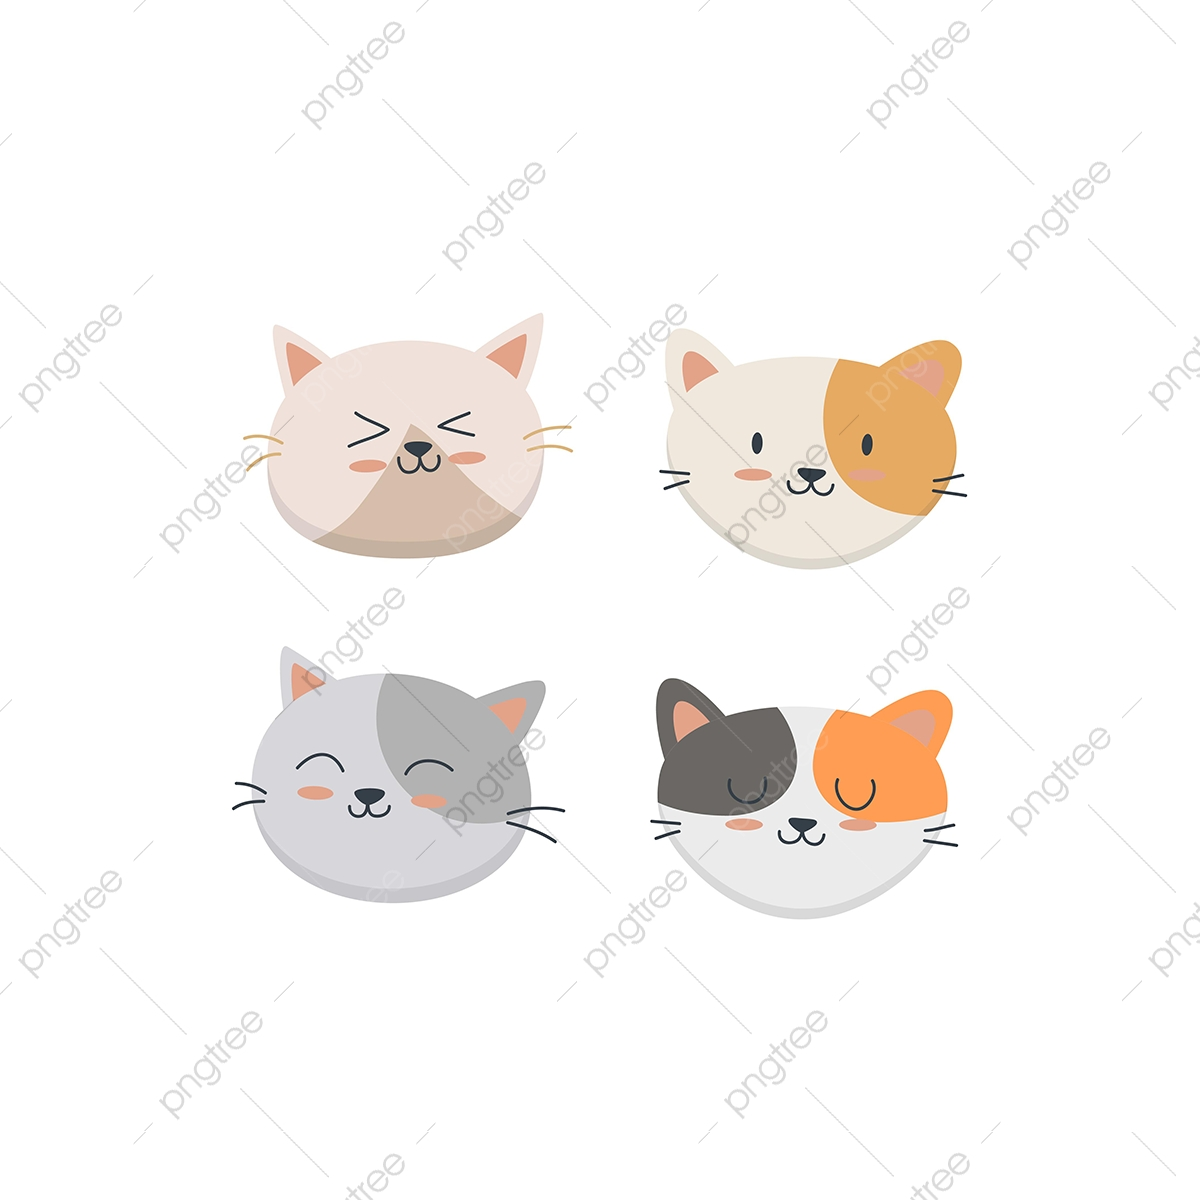 Cute Cat Face Set Collection Cat Clipart Pet Funny Png And Vector With Transparent Background For Free Download